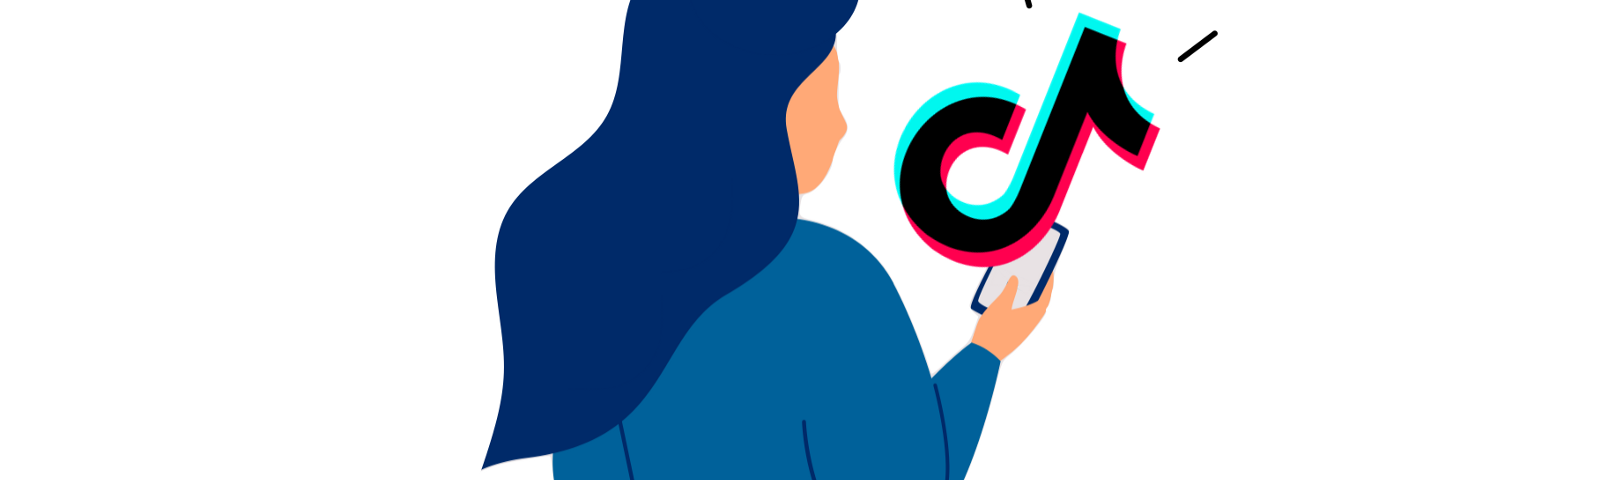 Woman looking at a phone  emanating a large TikTok logo